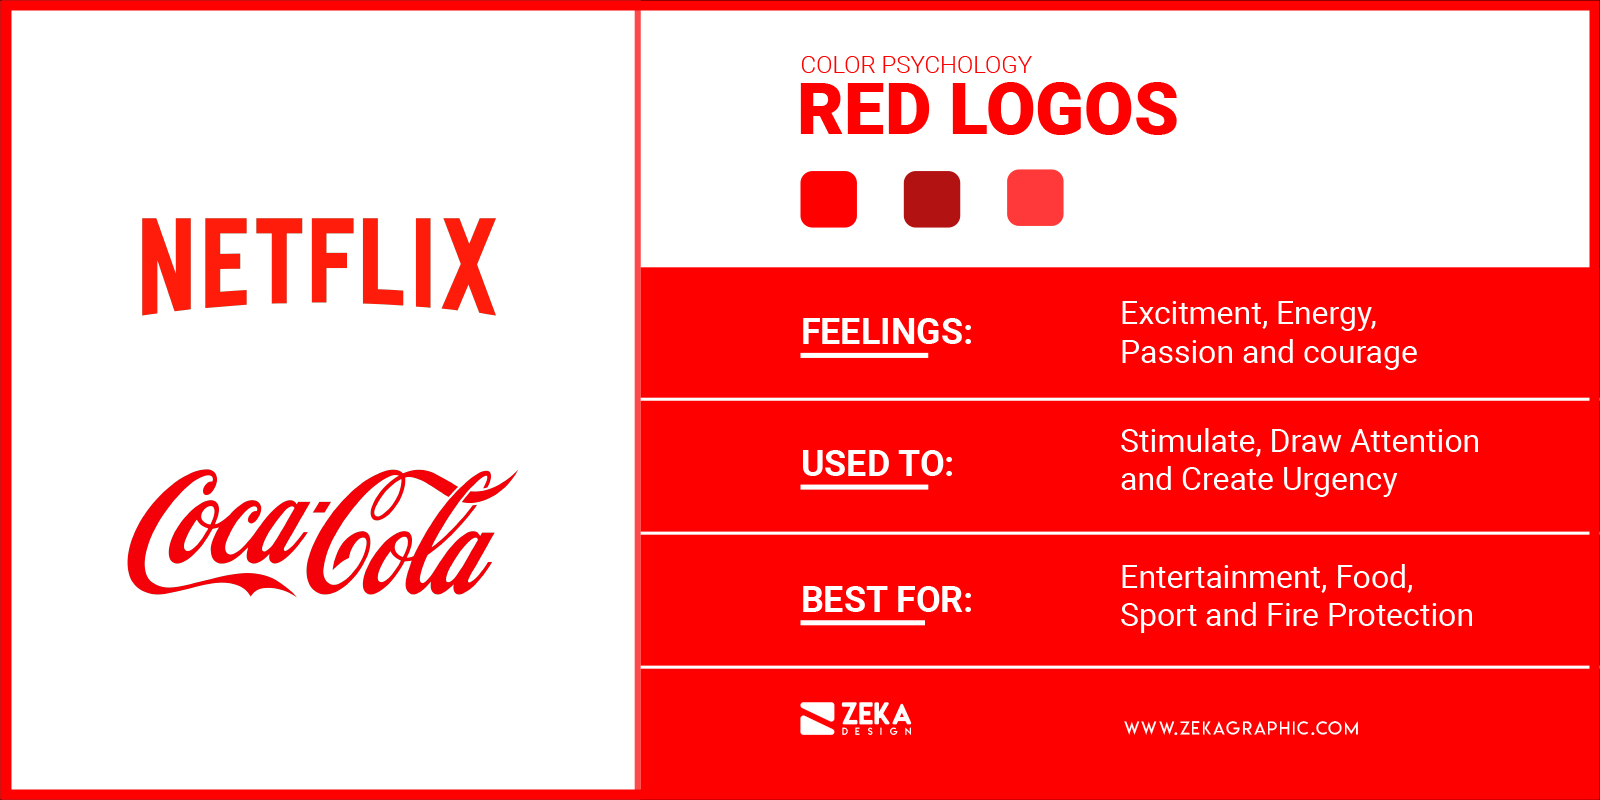 Red Logos Meaning in Graphic Design